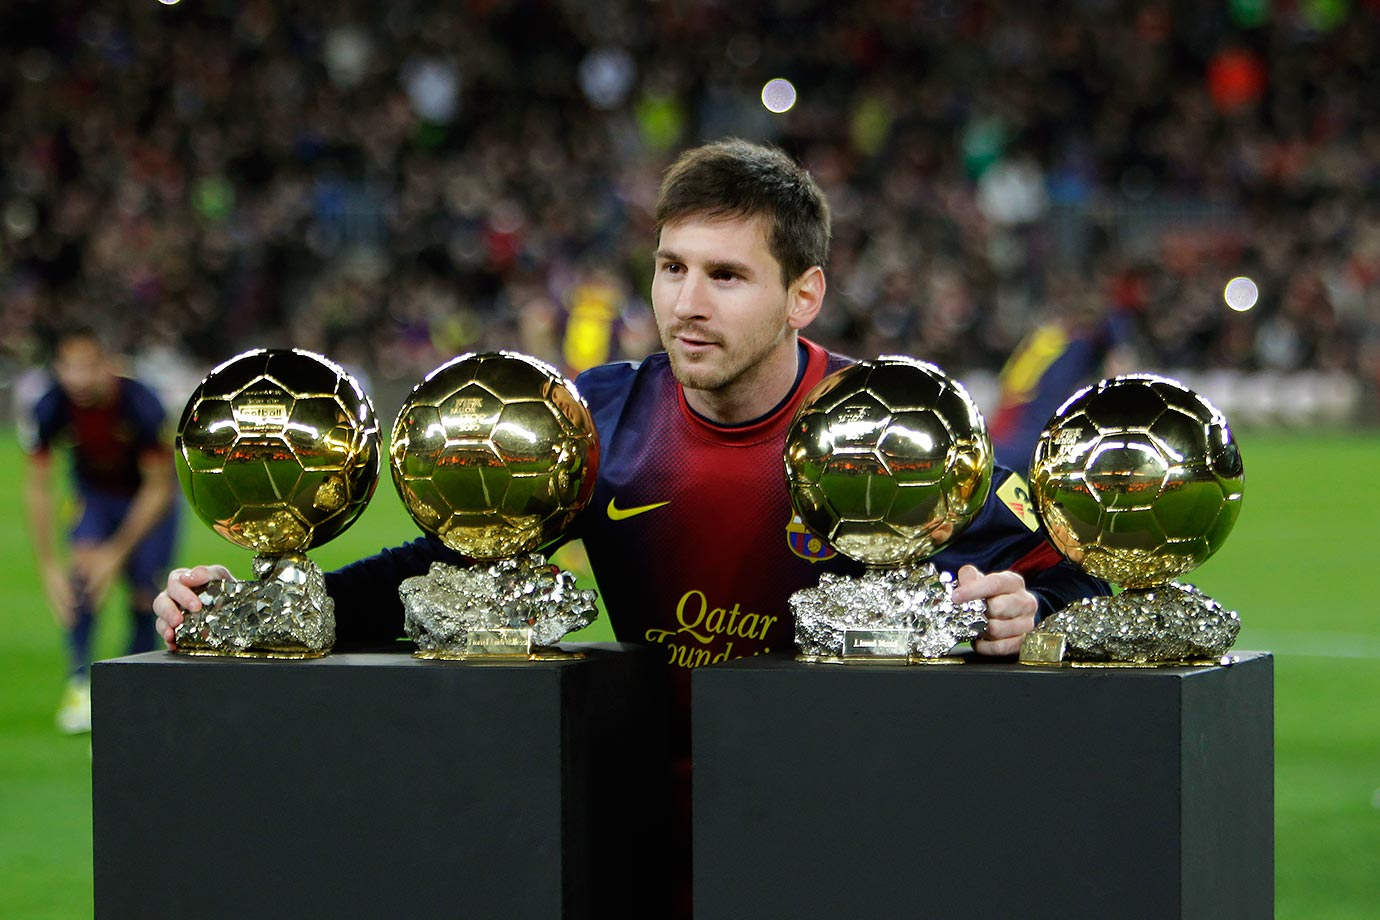 Photo of The World's Top 10 Football Trophies